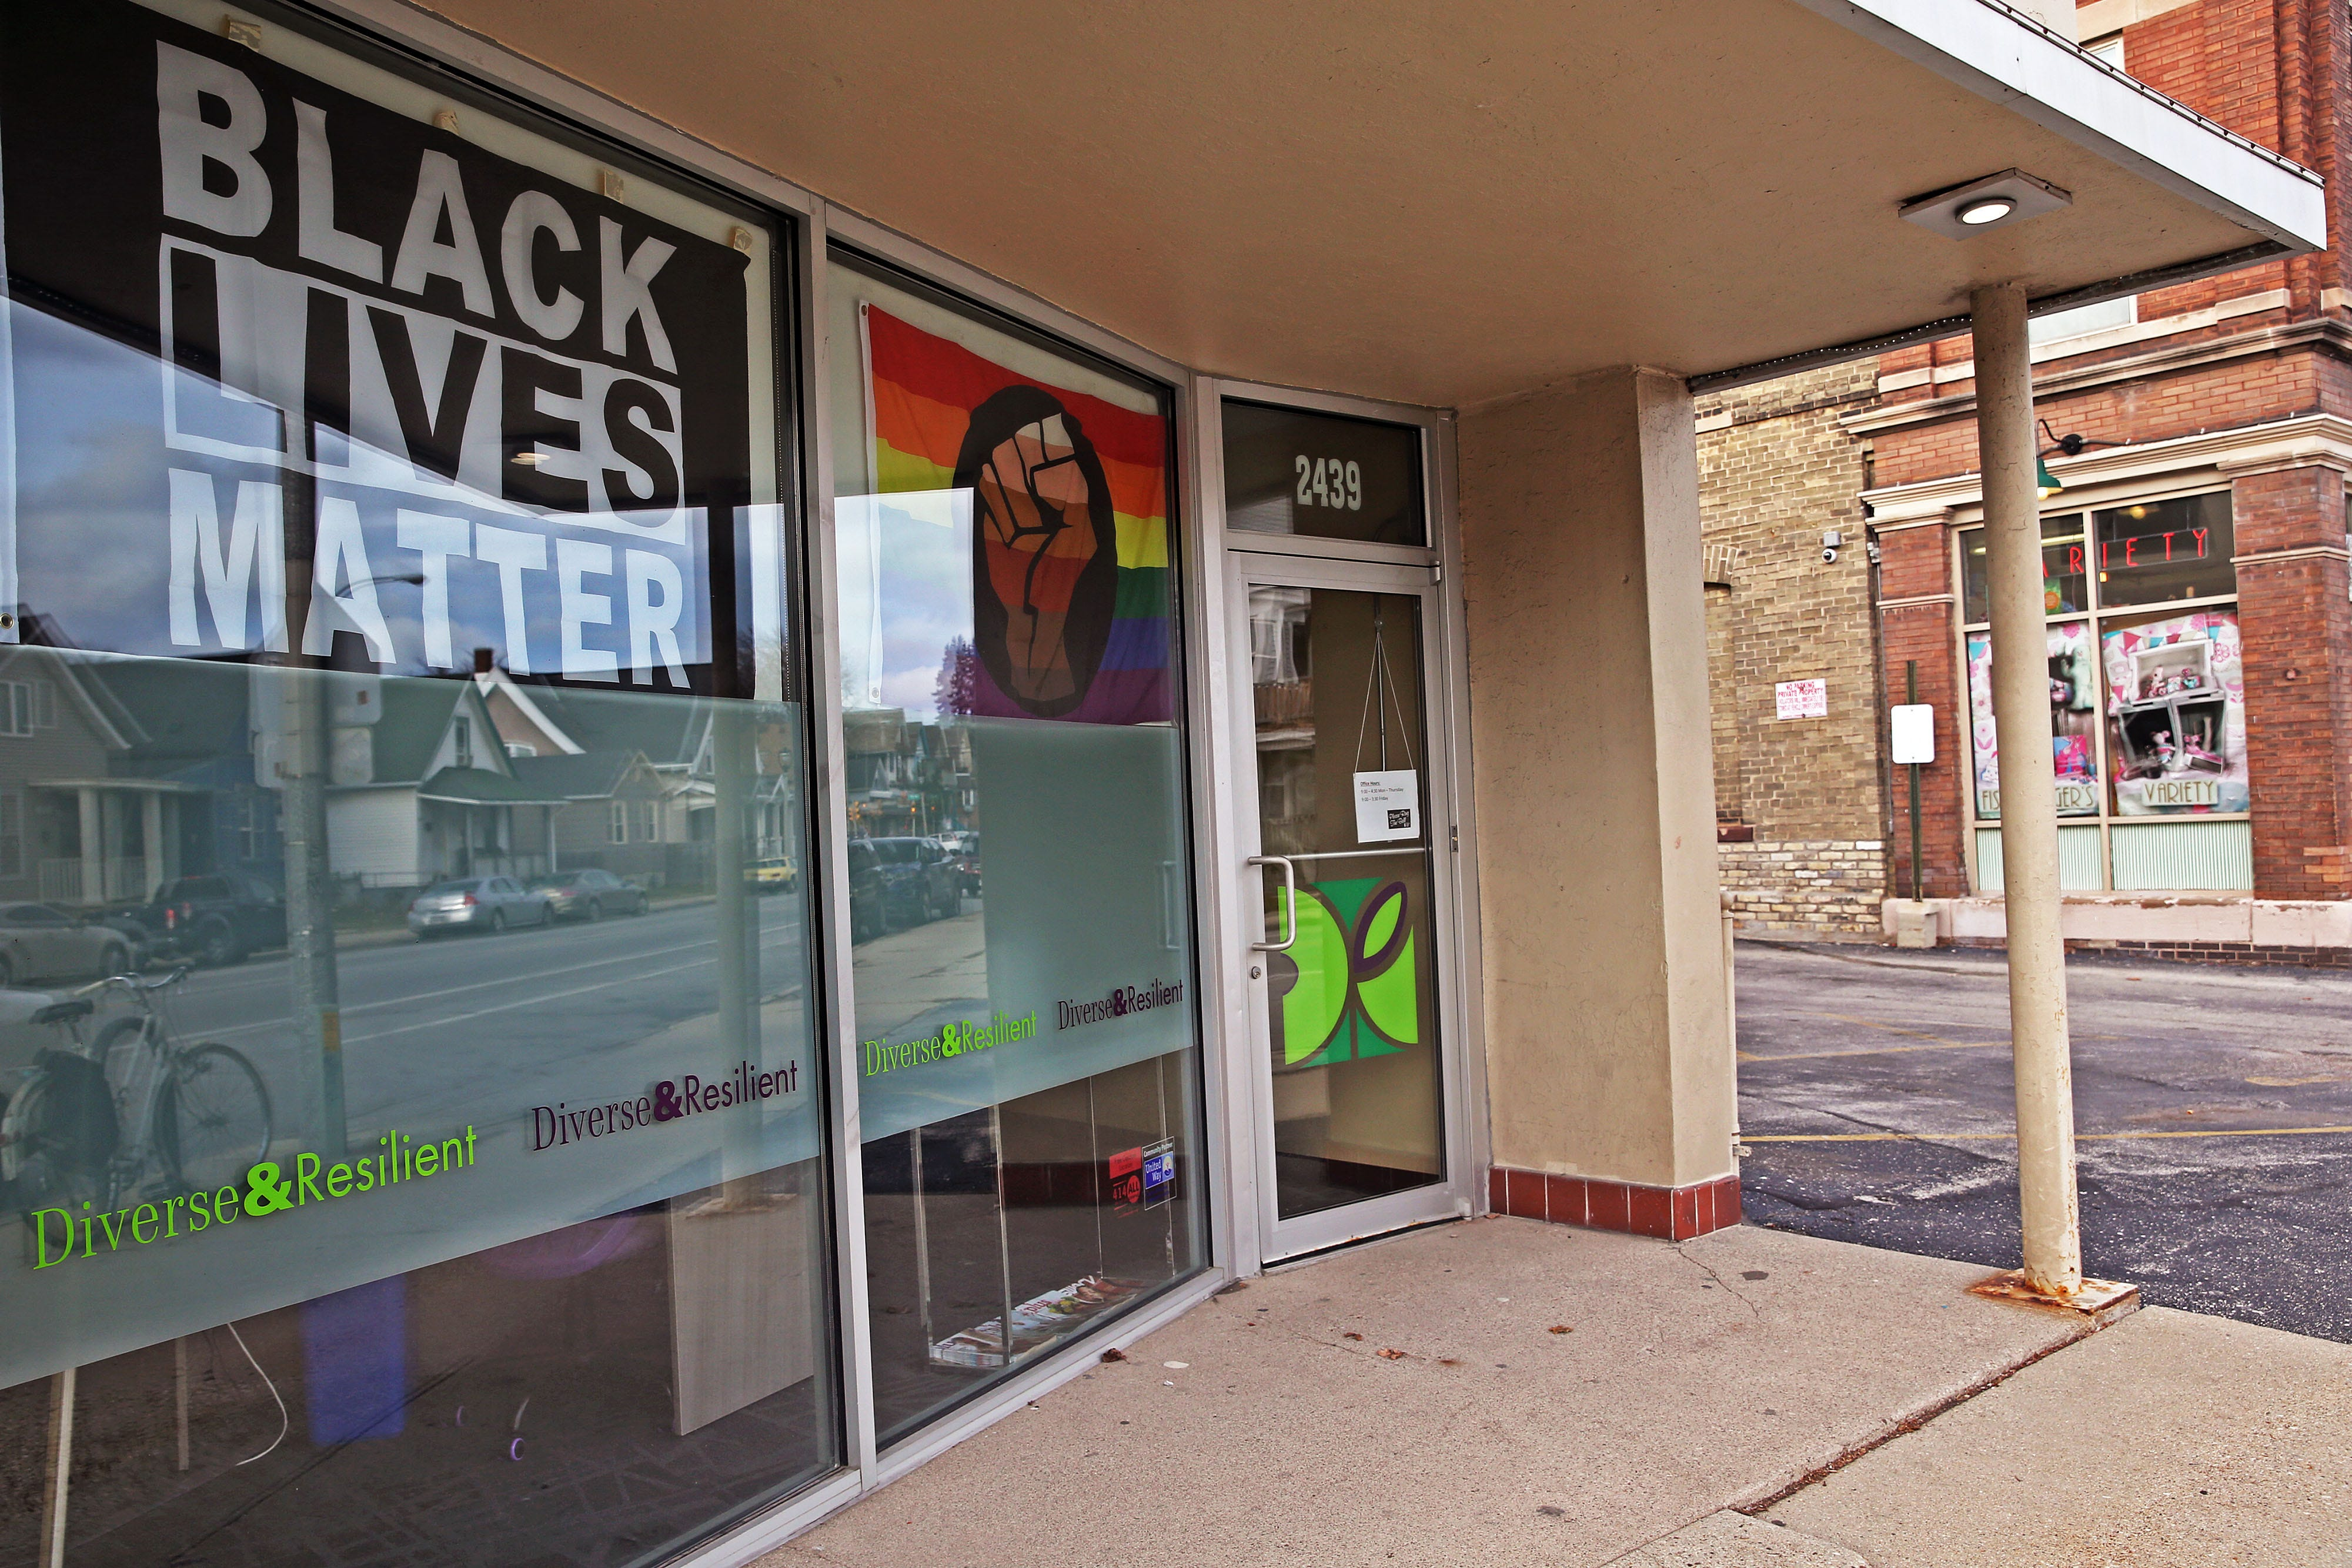 Diverse & Resilient at 2439 N. Holton St., Milwaukee on Tuesday, Dec. 15, 2020.